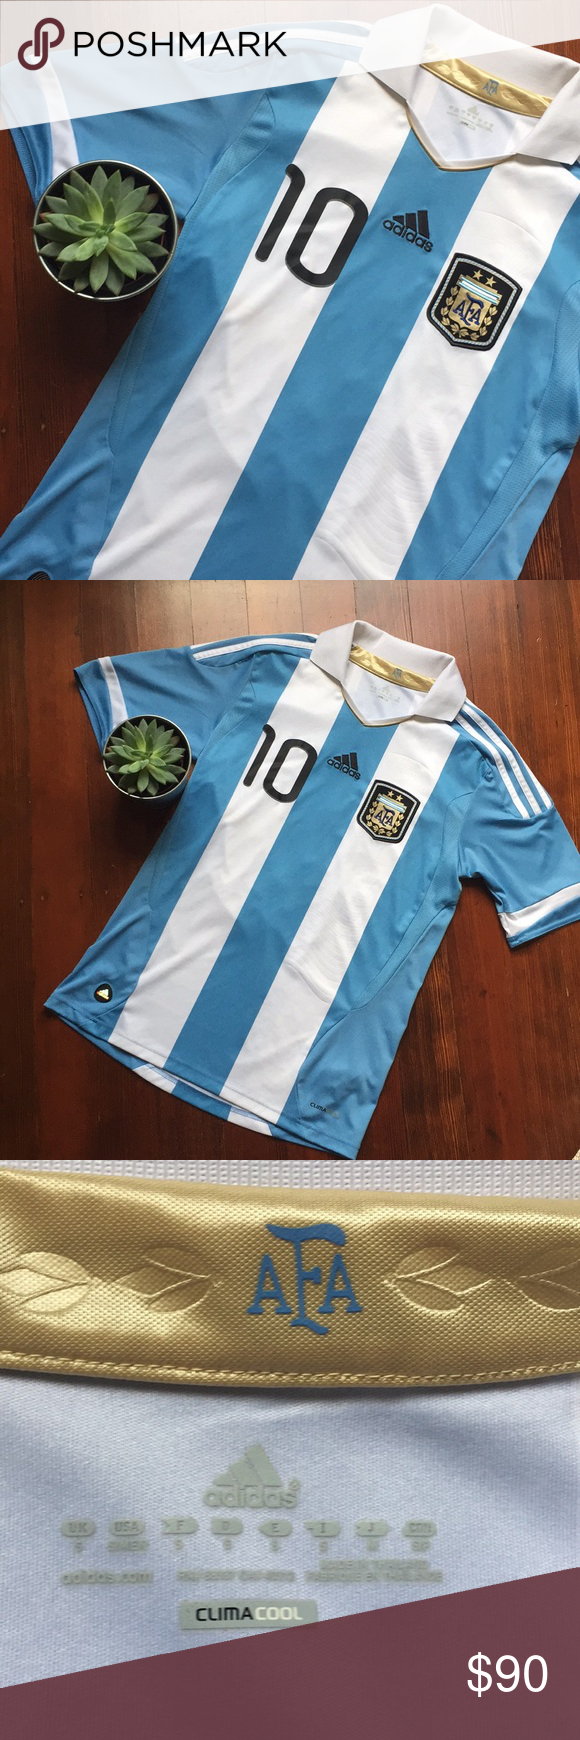 the latest 5e6ae c6946 Adidas Argentina AFA Messi 10 Soccer Polo This is a used ...